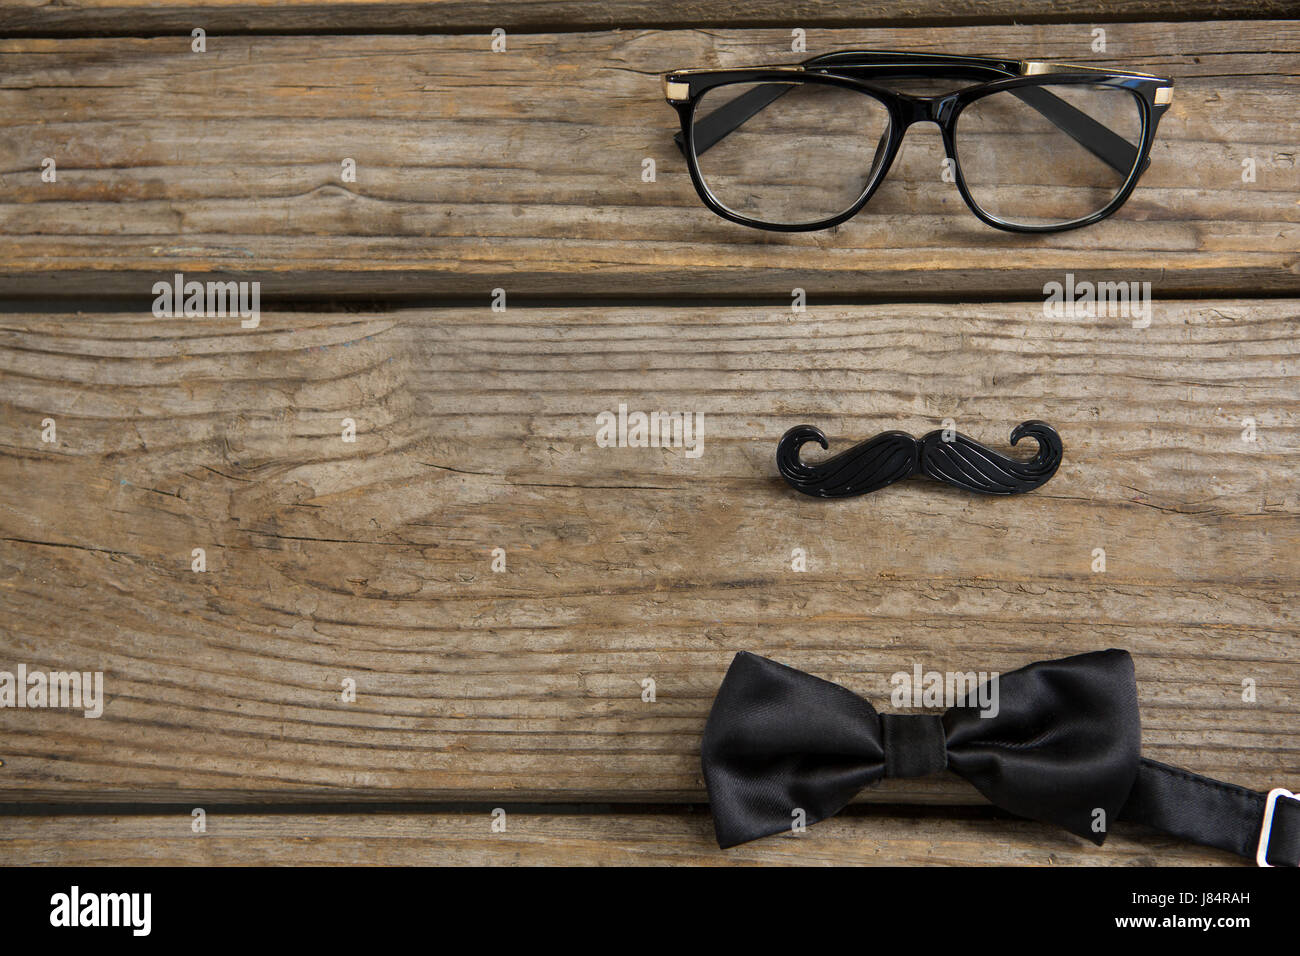 High angle view of anthropomorphic face made with eyeglasses and bow tie on wooden table - Stock Image